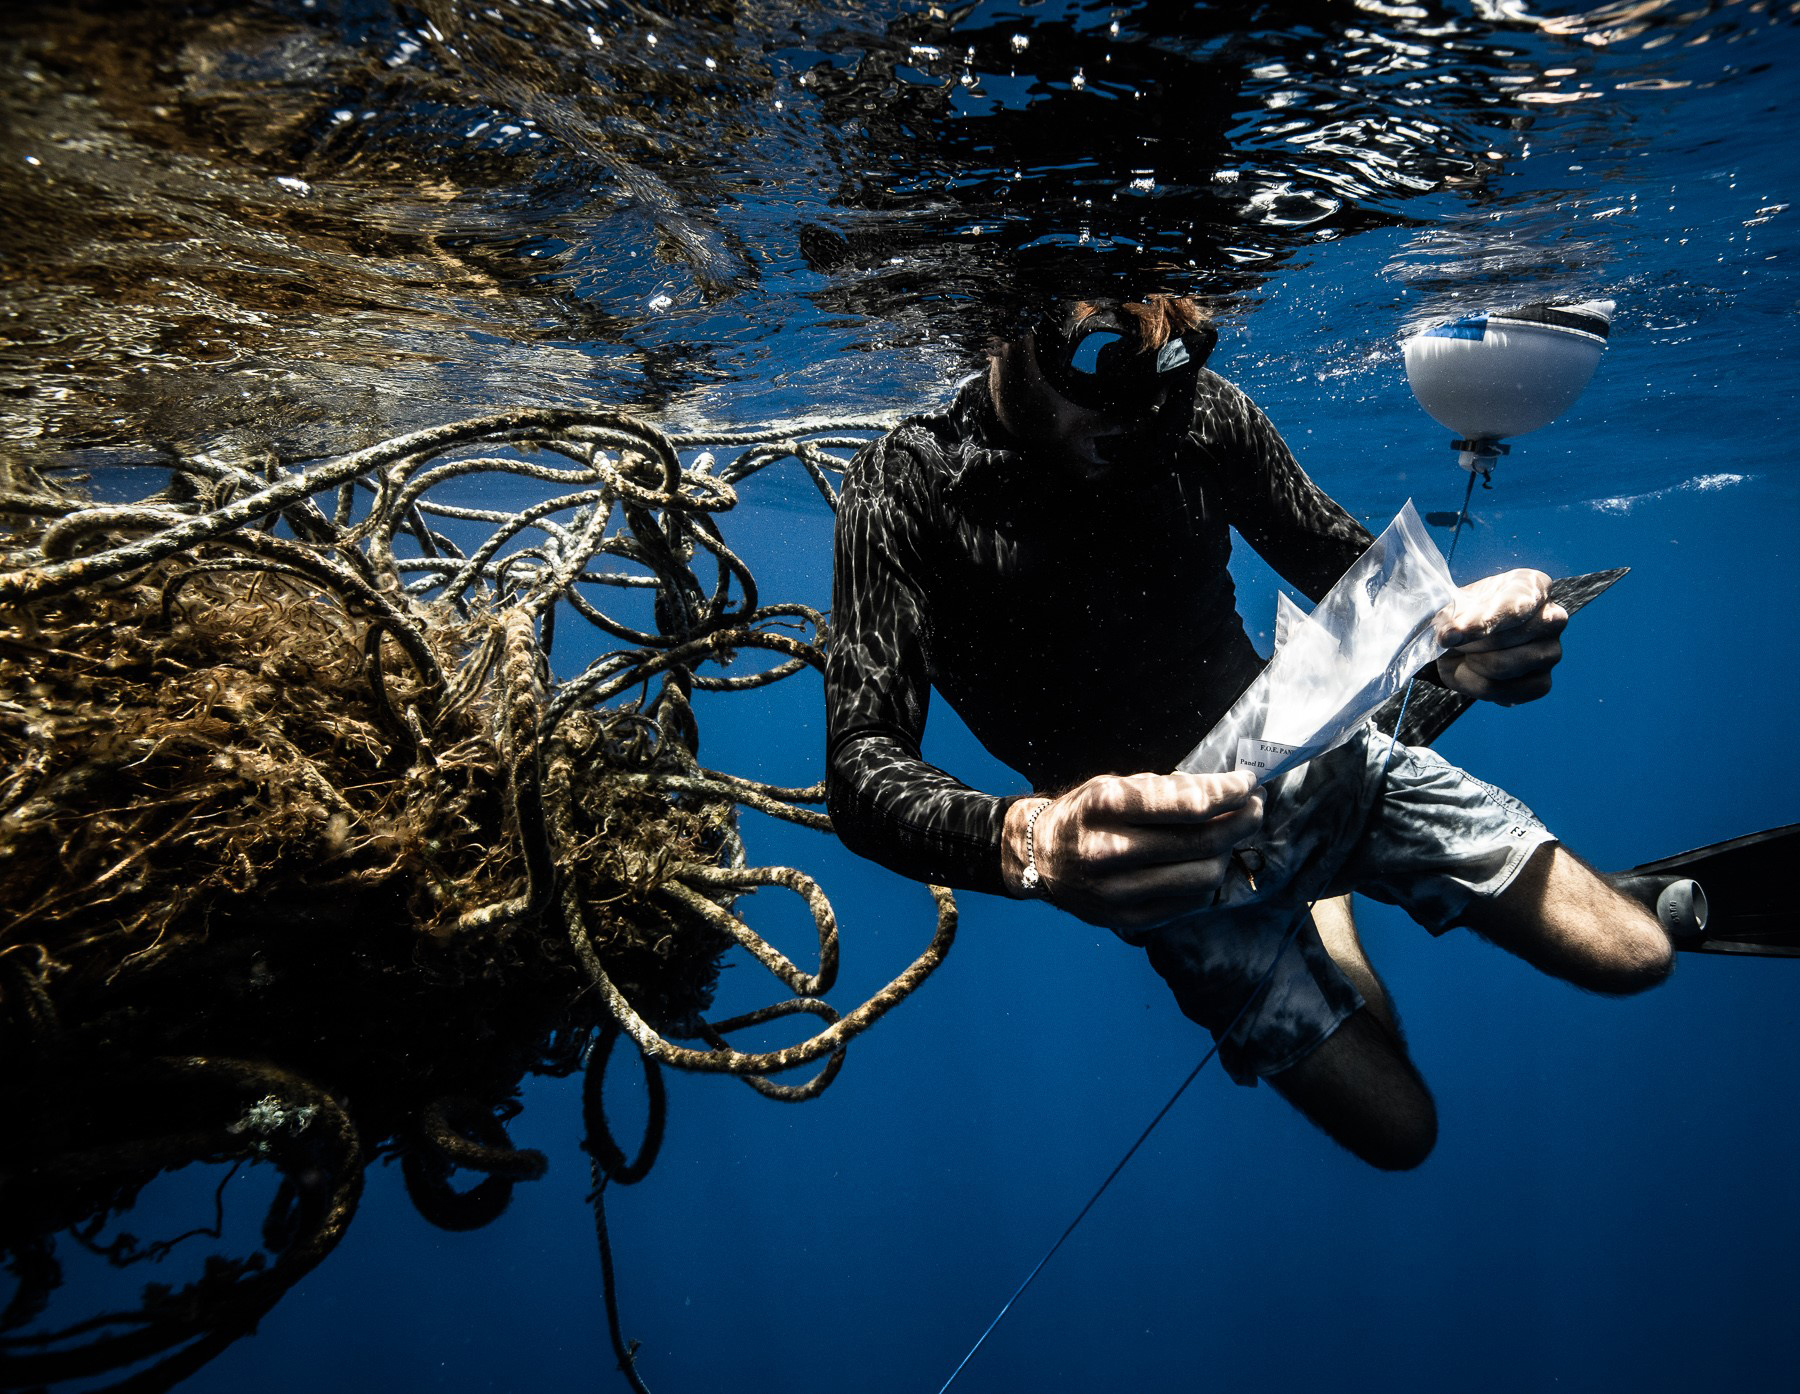 Diver under water with a lost fishing gear